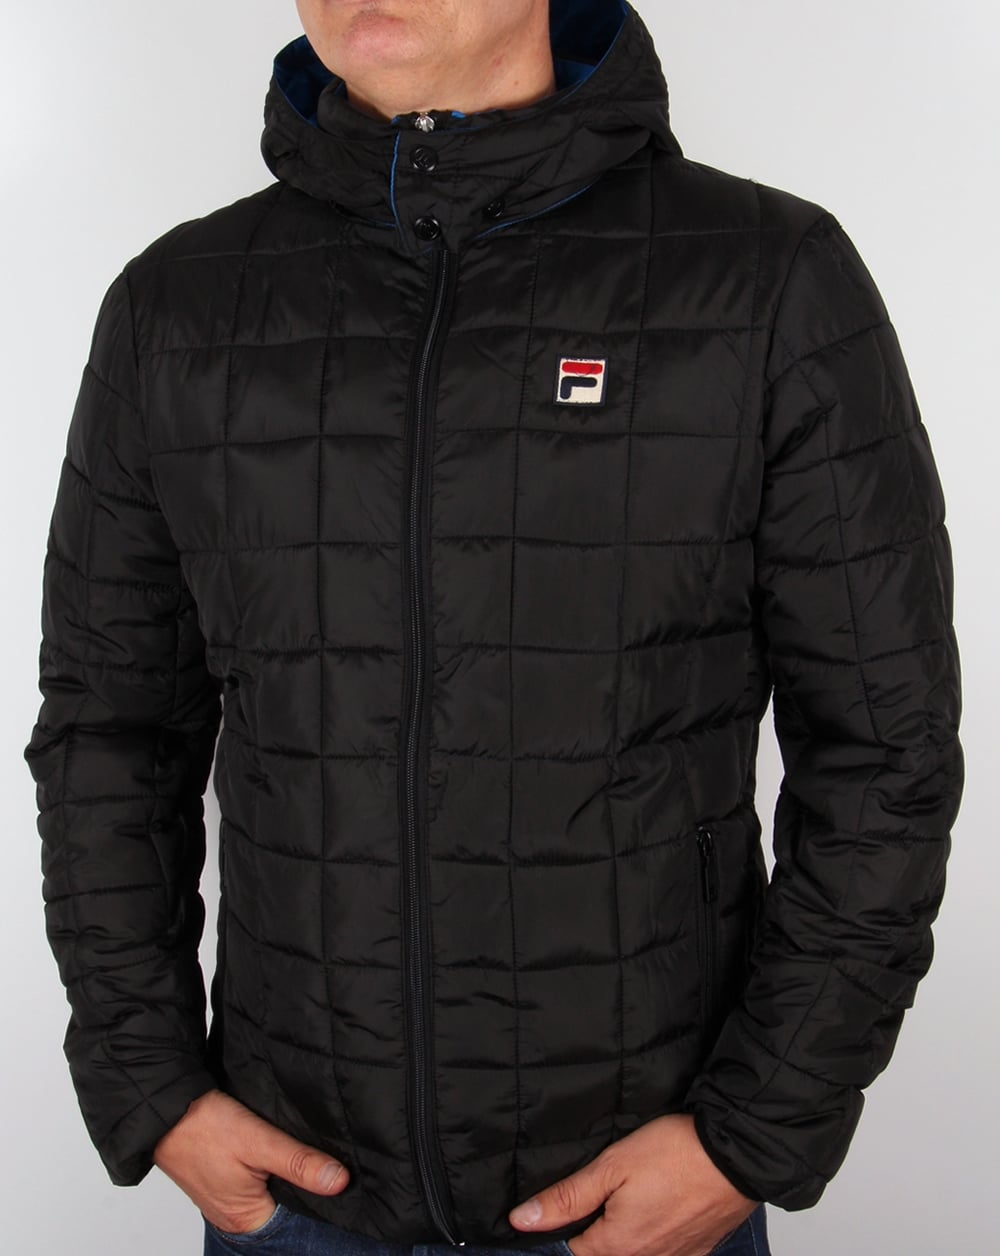 Fila Vintage Passo Quilted Jacket Black Coat Padded Hooded